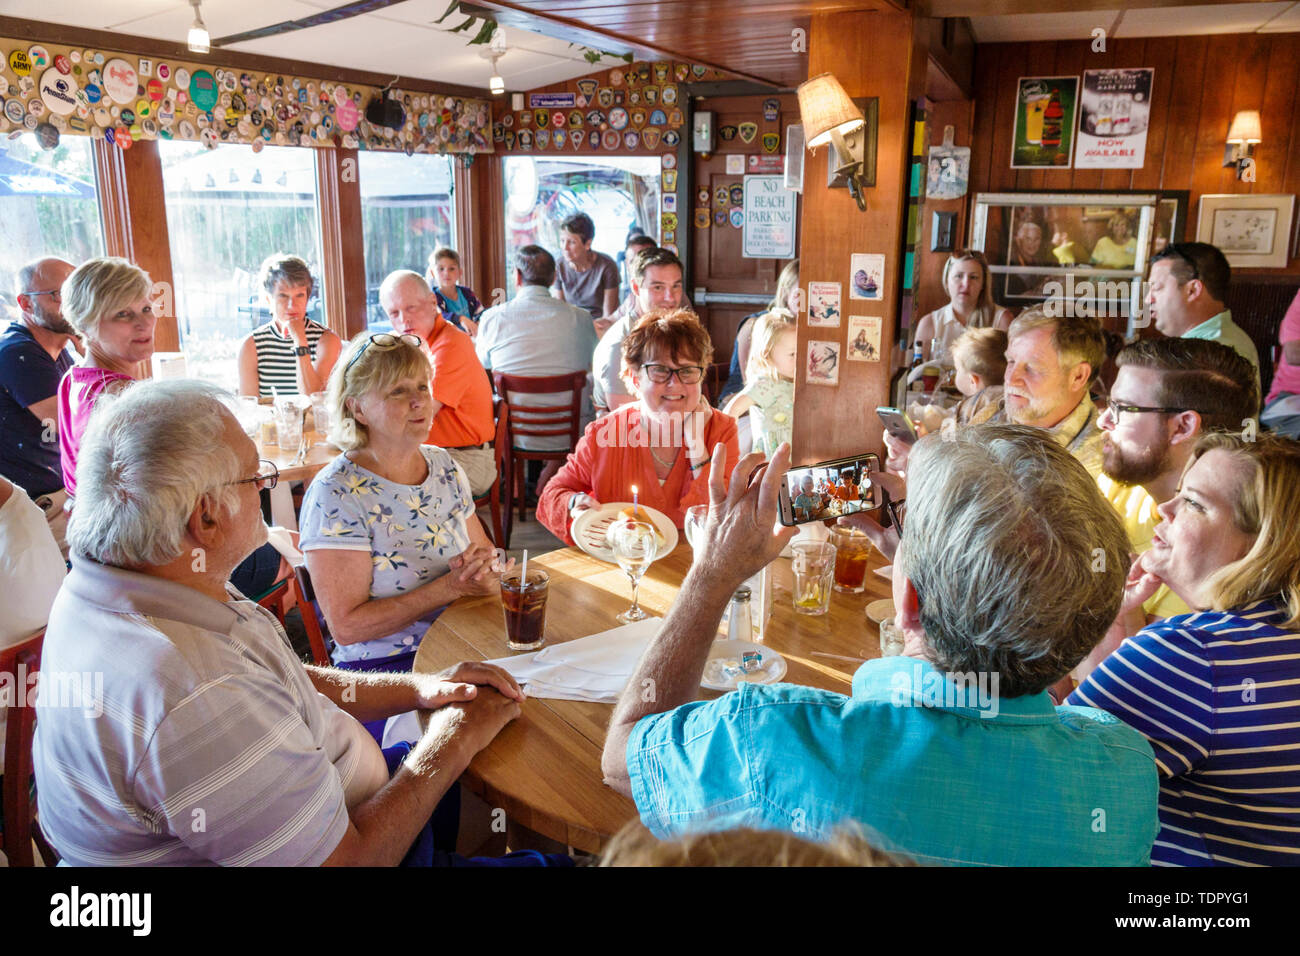 Captiva Island Florida The Mucky Duck restaurant inside tables crowded busy casual dining man woman birthday celebration taking photo smartphone Stock Photo